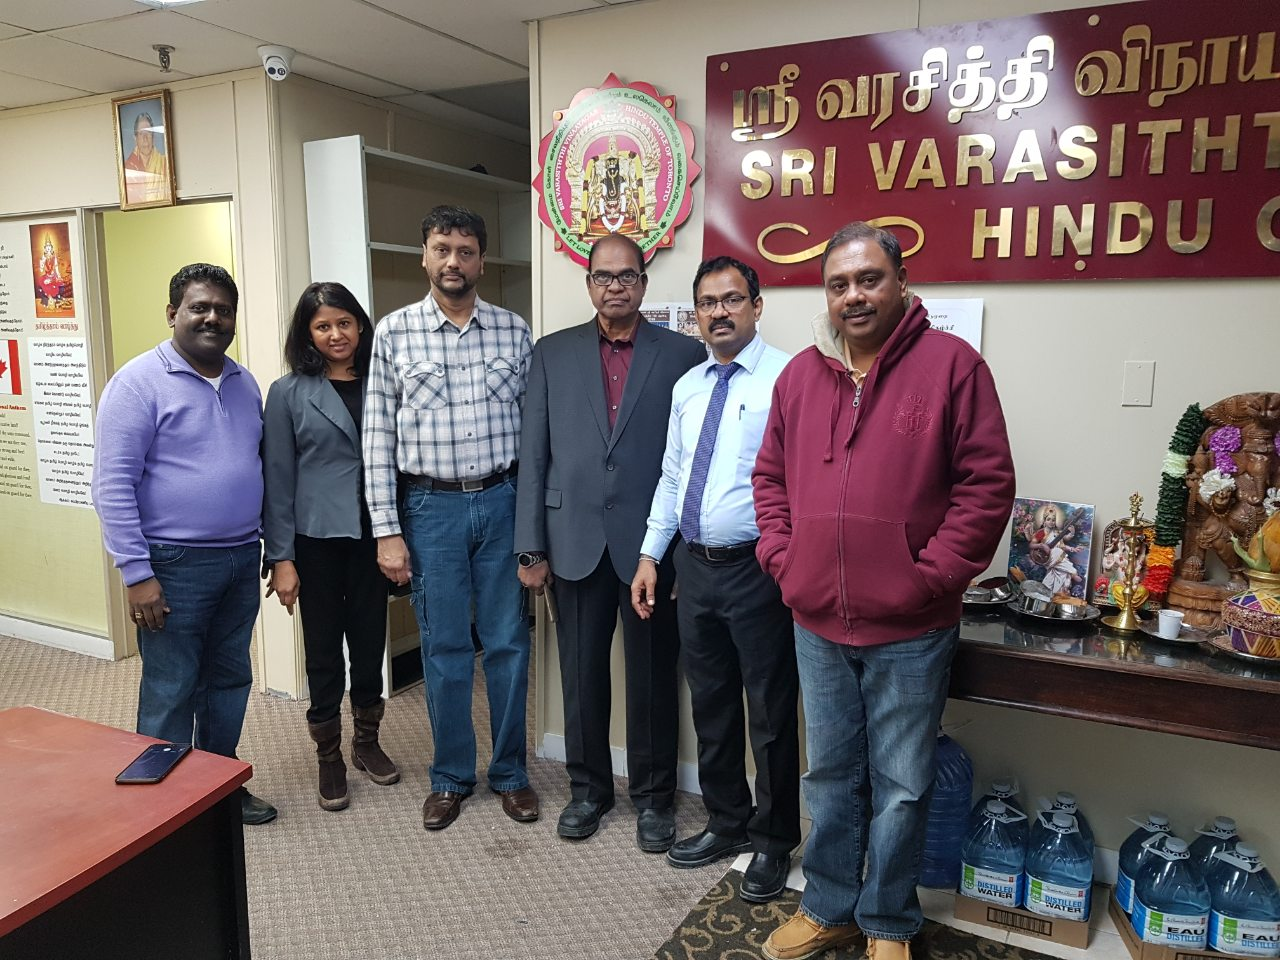 Consulate General of Sri Lanka in Toronto Conducts Mobile